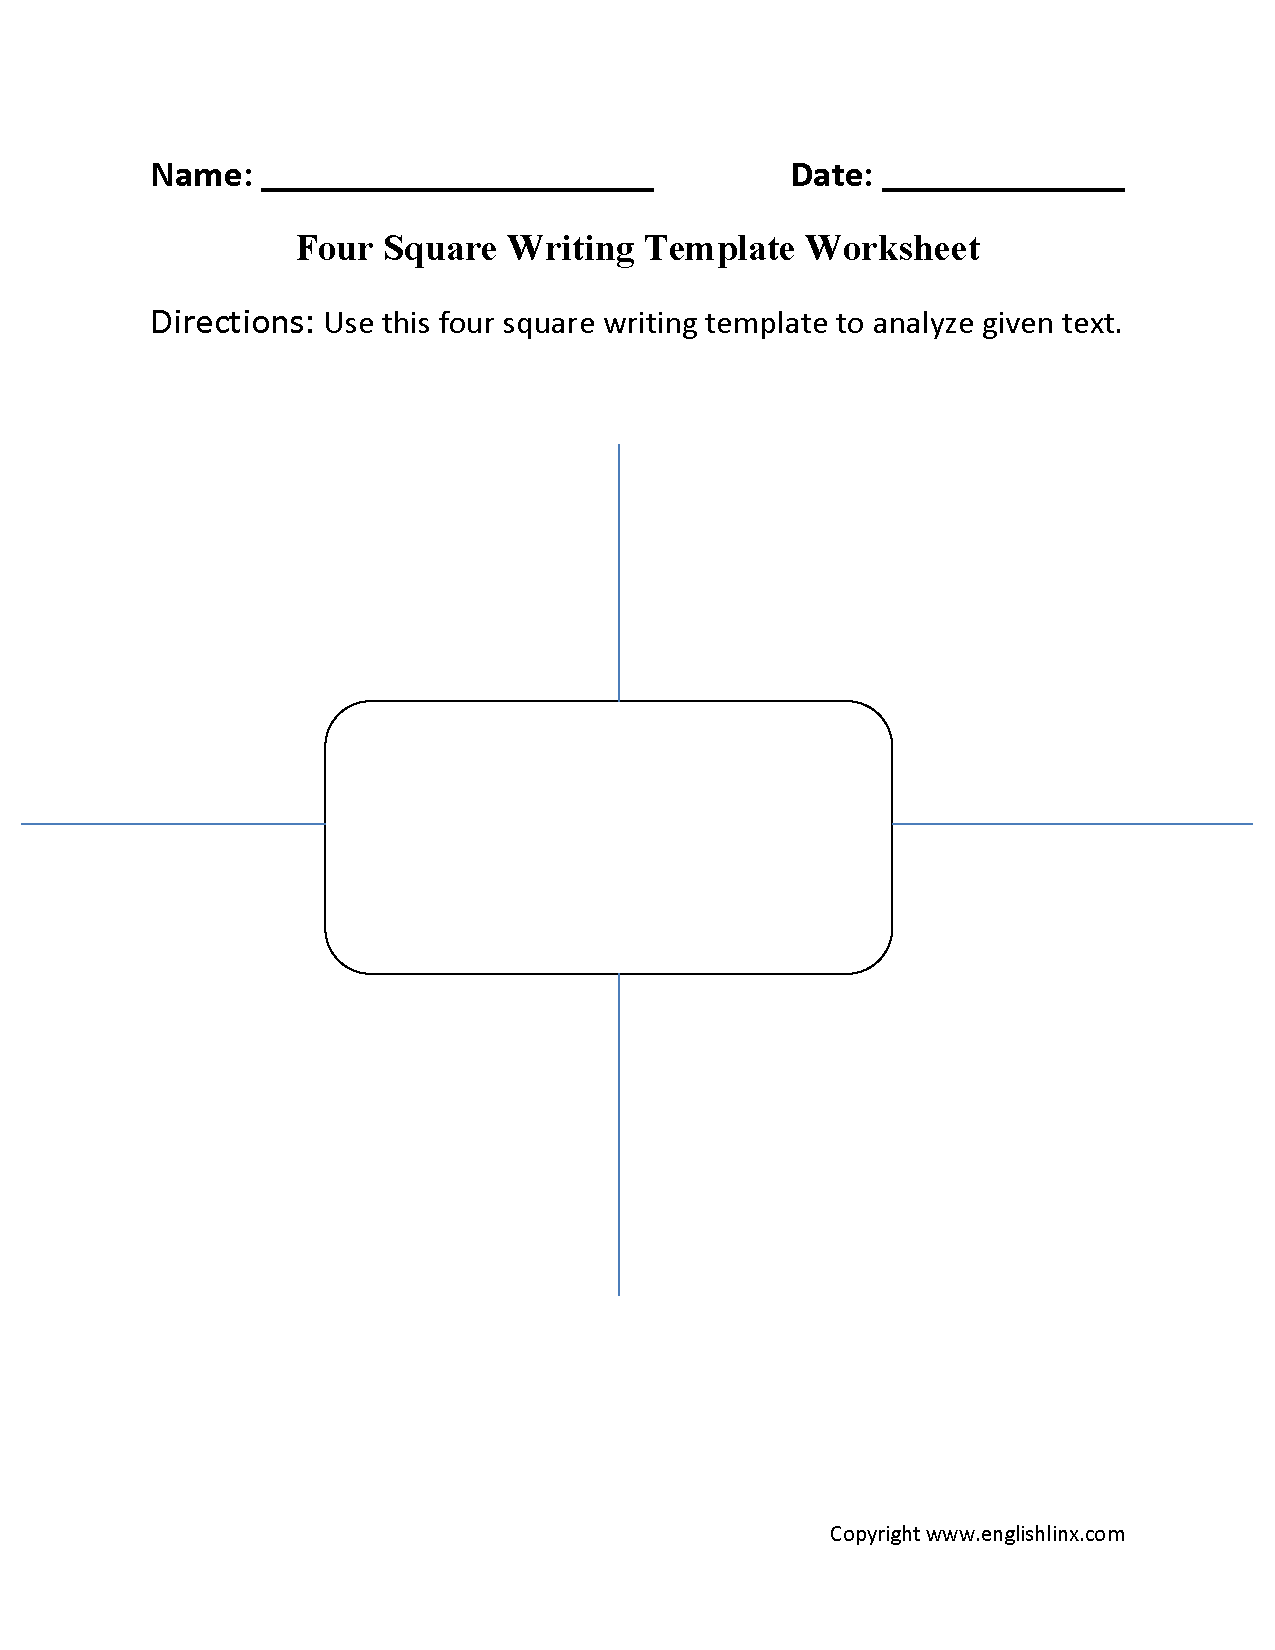 Worksheet Four Square Worksheet Grass Fedjp Worksheet